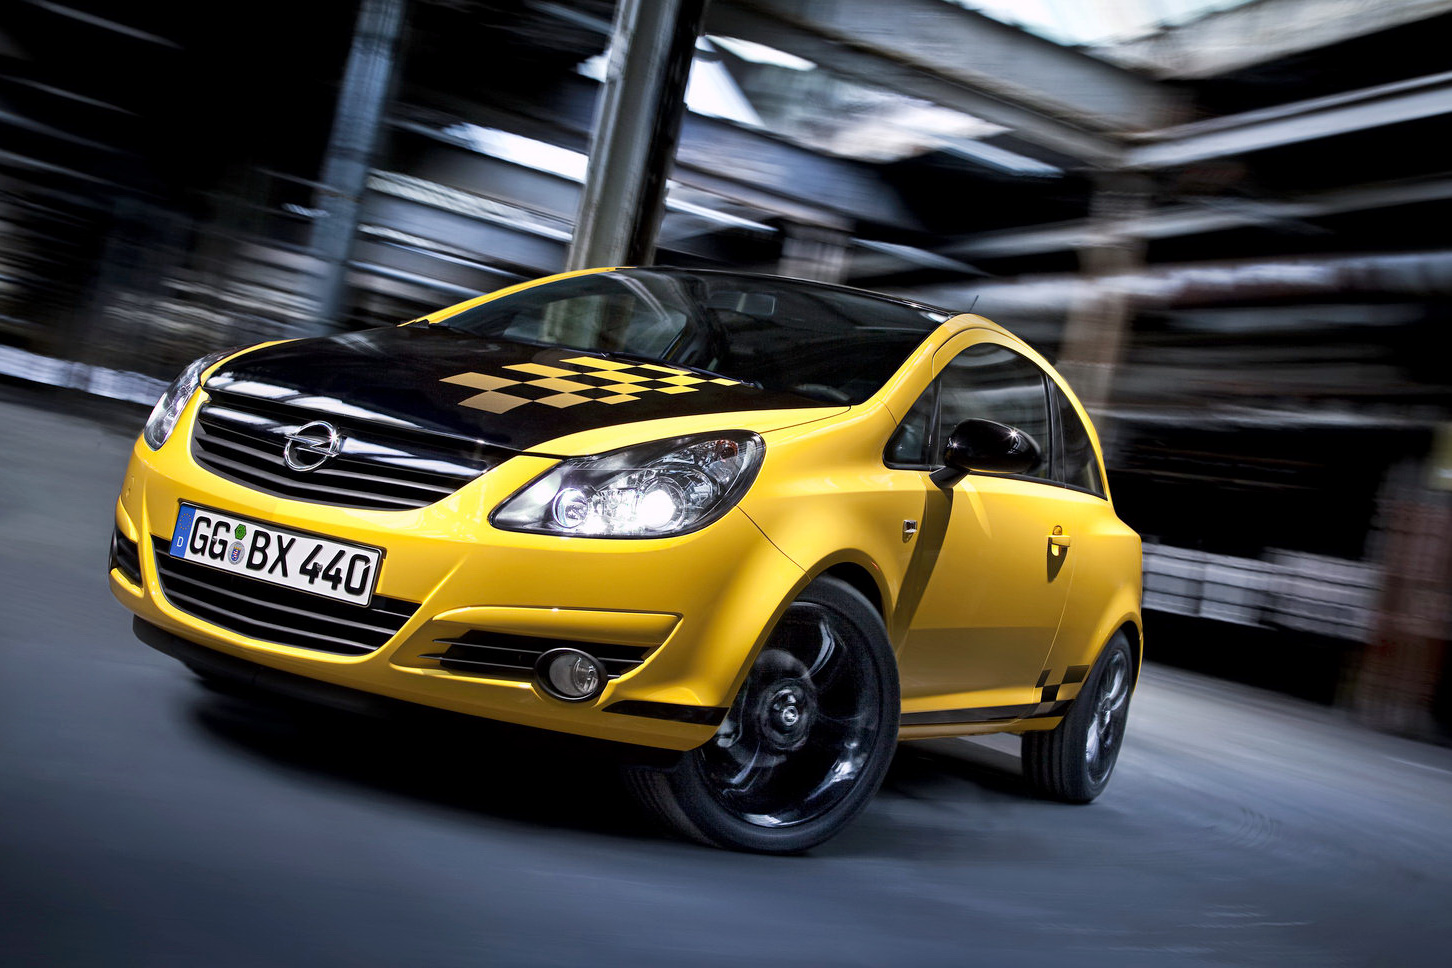 opel corsa supermini Color Race has just released a special edition of their